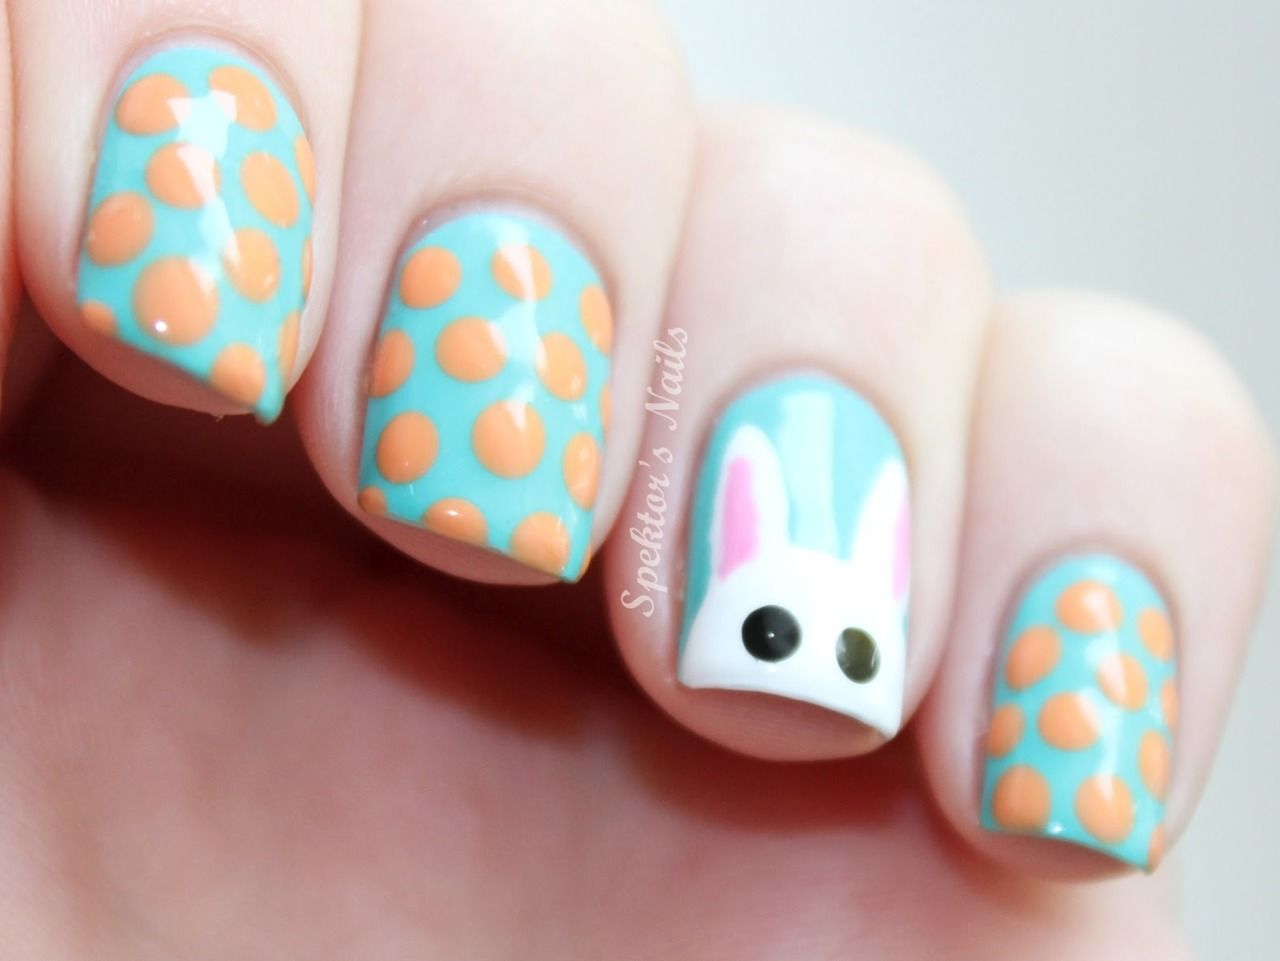 Look at that little fella!!! Just in time for Easter too! :D